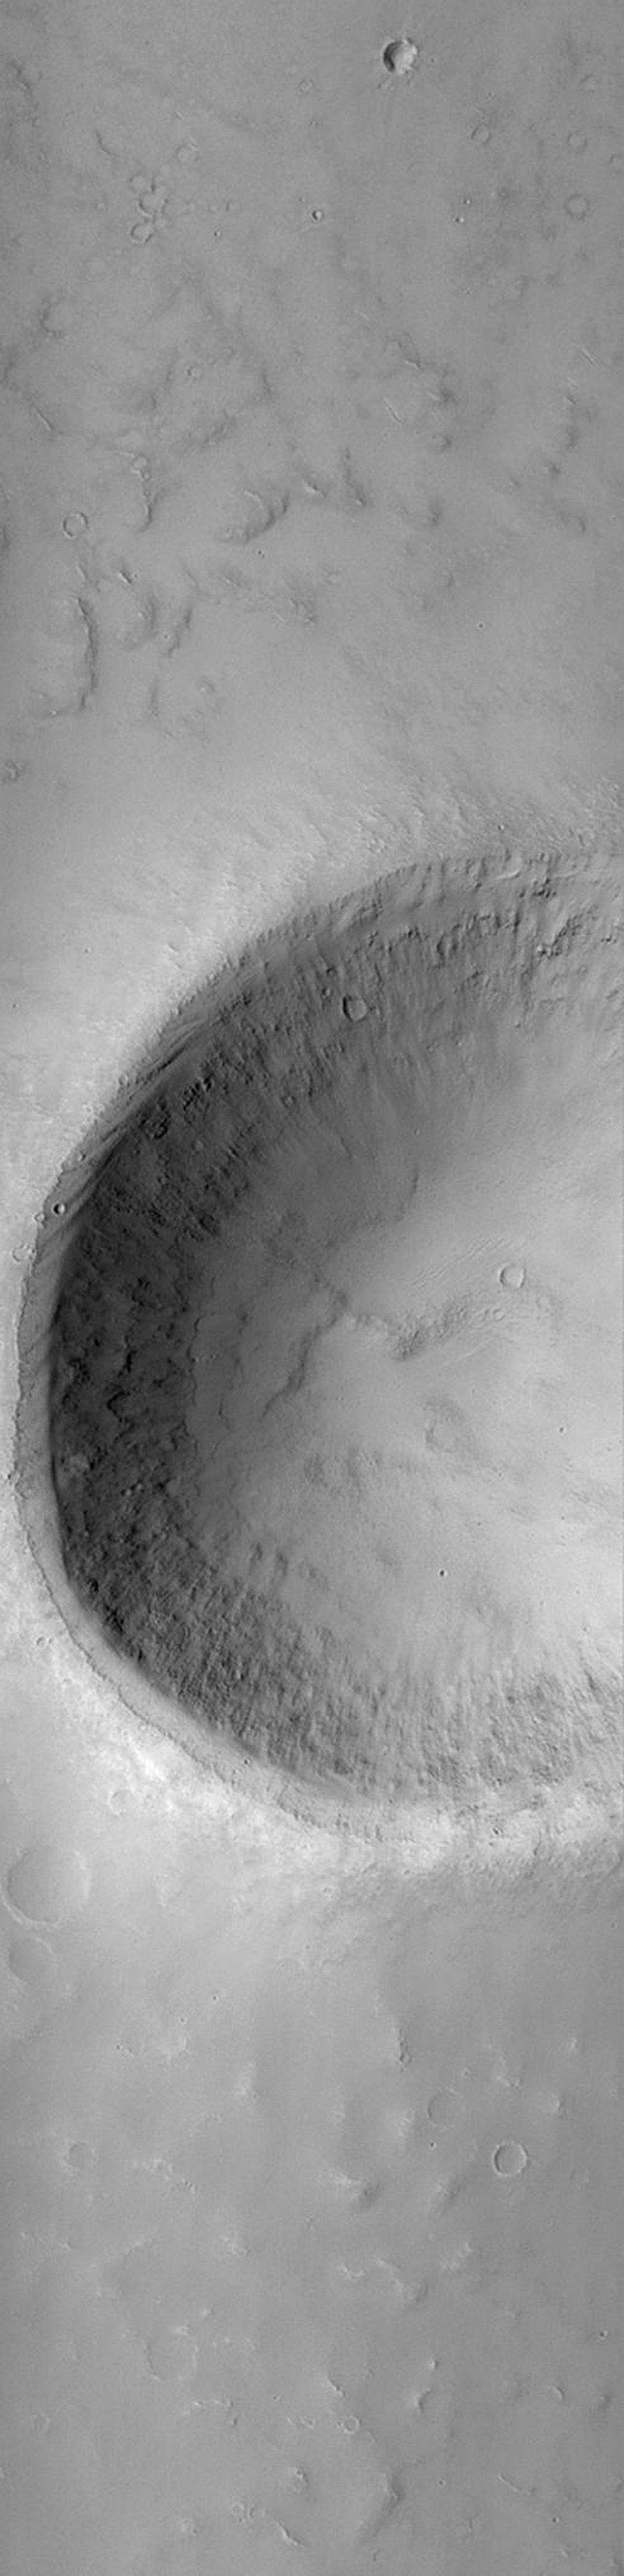 NASA's Mars Global Surveyor shows a crater located on a plain west of the Tartarus Montes (east of Elysium Mons volcano). The crater shows deposits of sand and dust on the floor and in low areas around the rim.